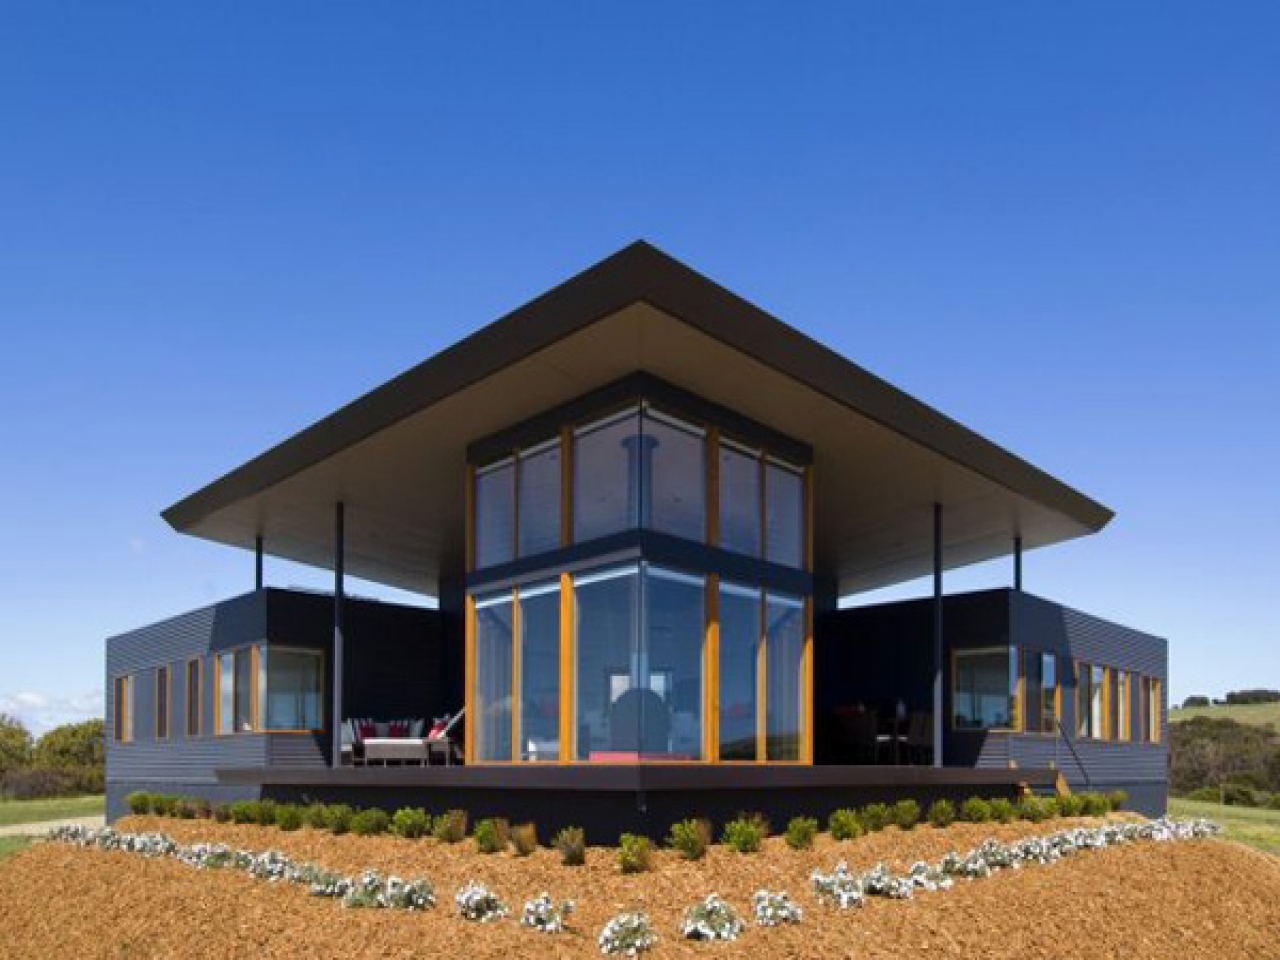 Australia architecture house plans designs simple small - House plans and designs with photos ...